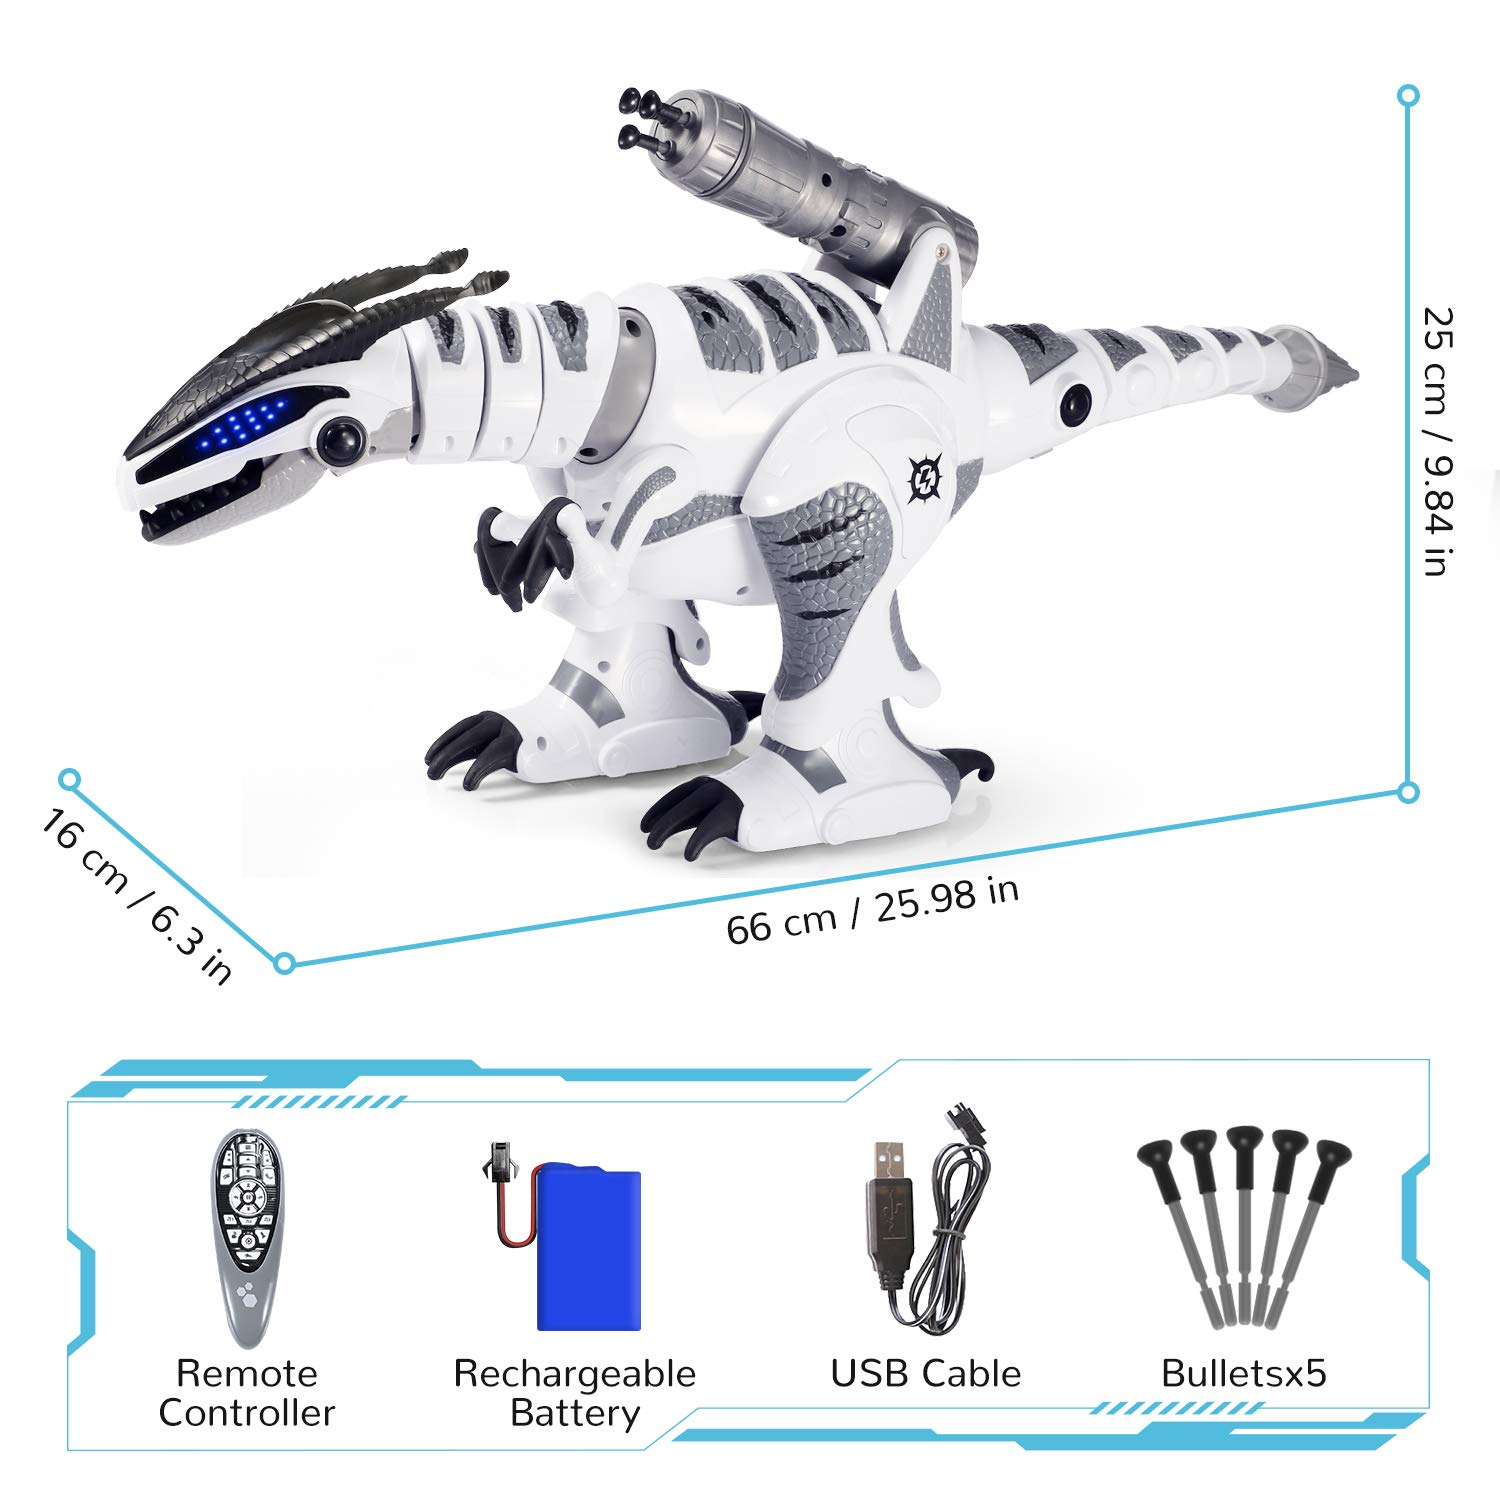 SGILE RC Dinosaur Robot Toy, Smart Programmable Interactive Walk Sing Dance for Kids Gift Present by SGILE (Image #6)